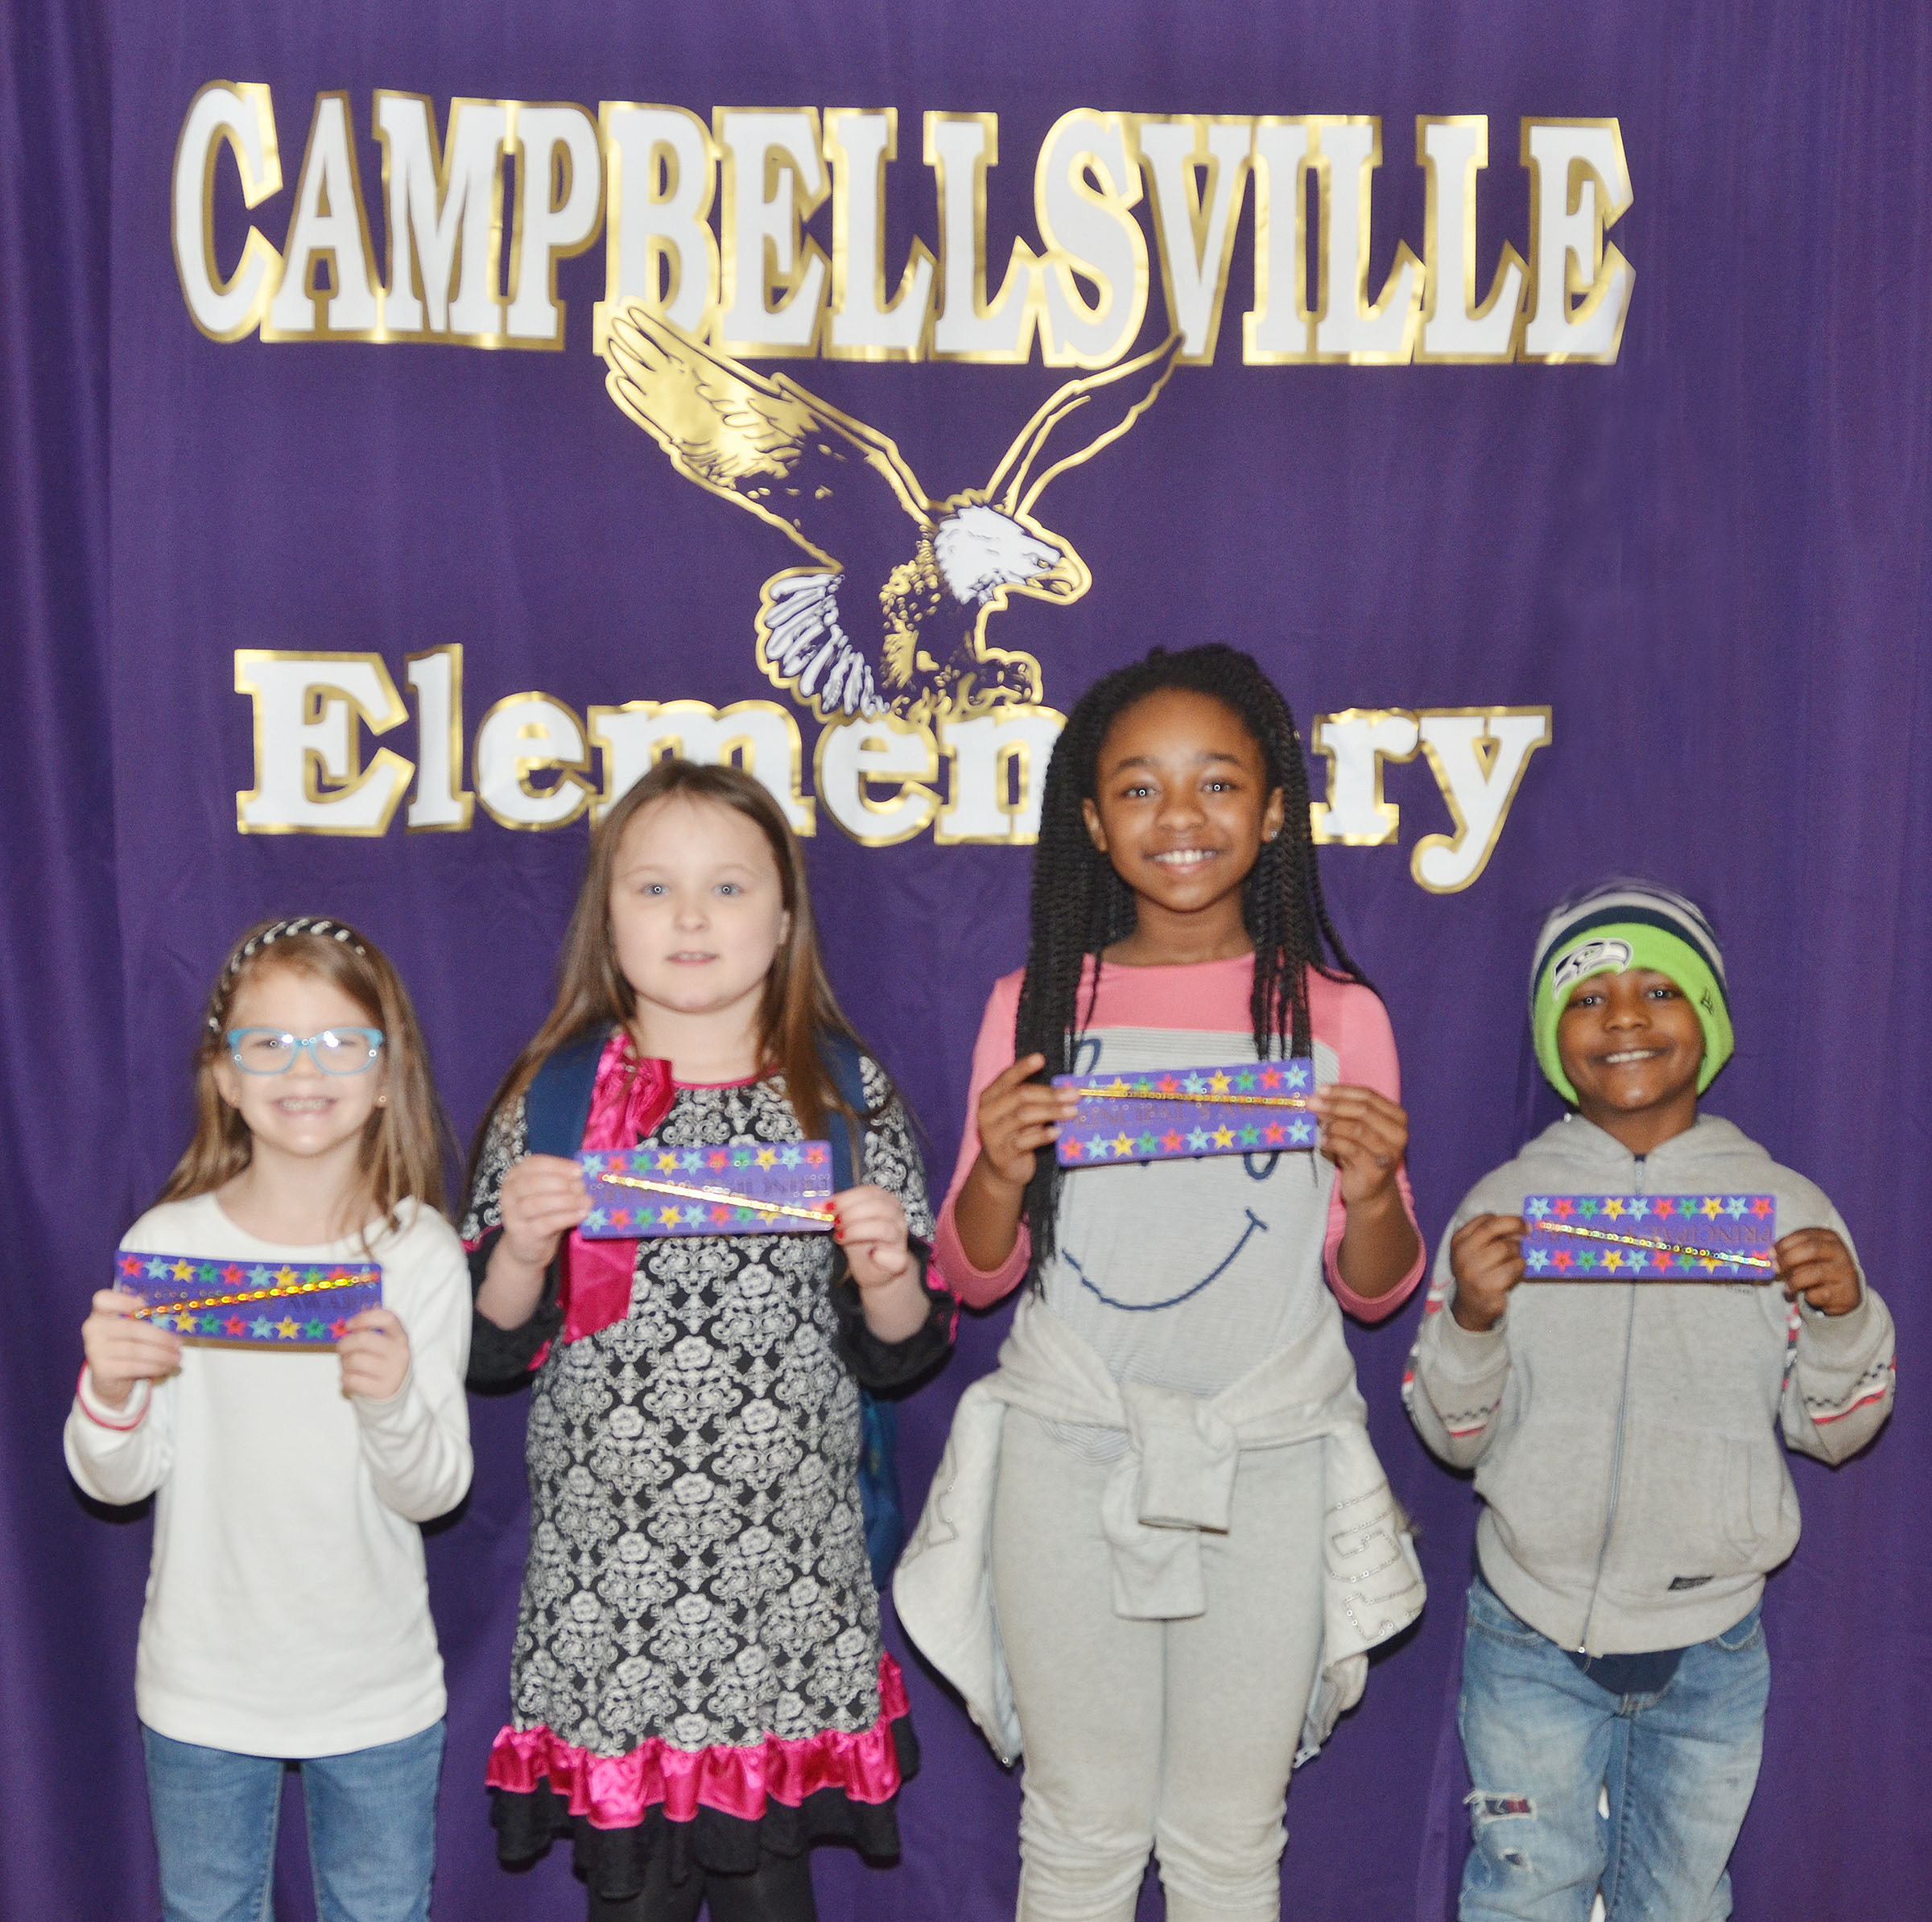 From left are kindergartener Zoe Weddle, second-grader Jazzlyn Cox, third-grader Tiffani Gaddie and first-grader Drelynn Hollins.